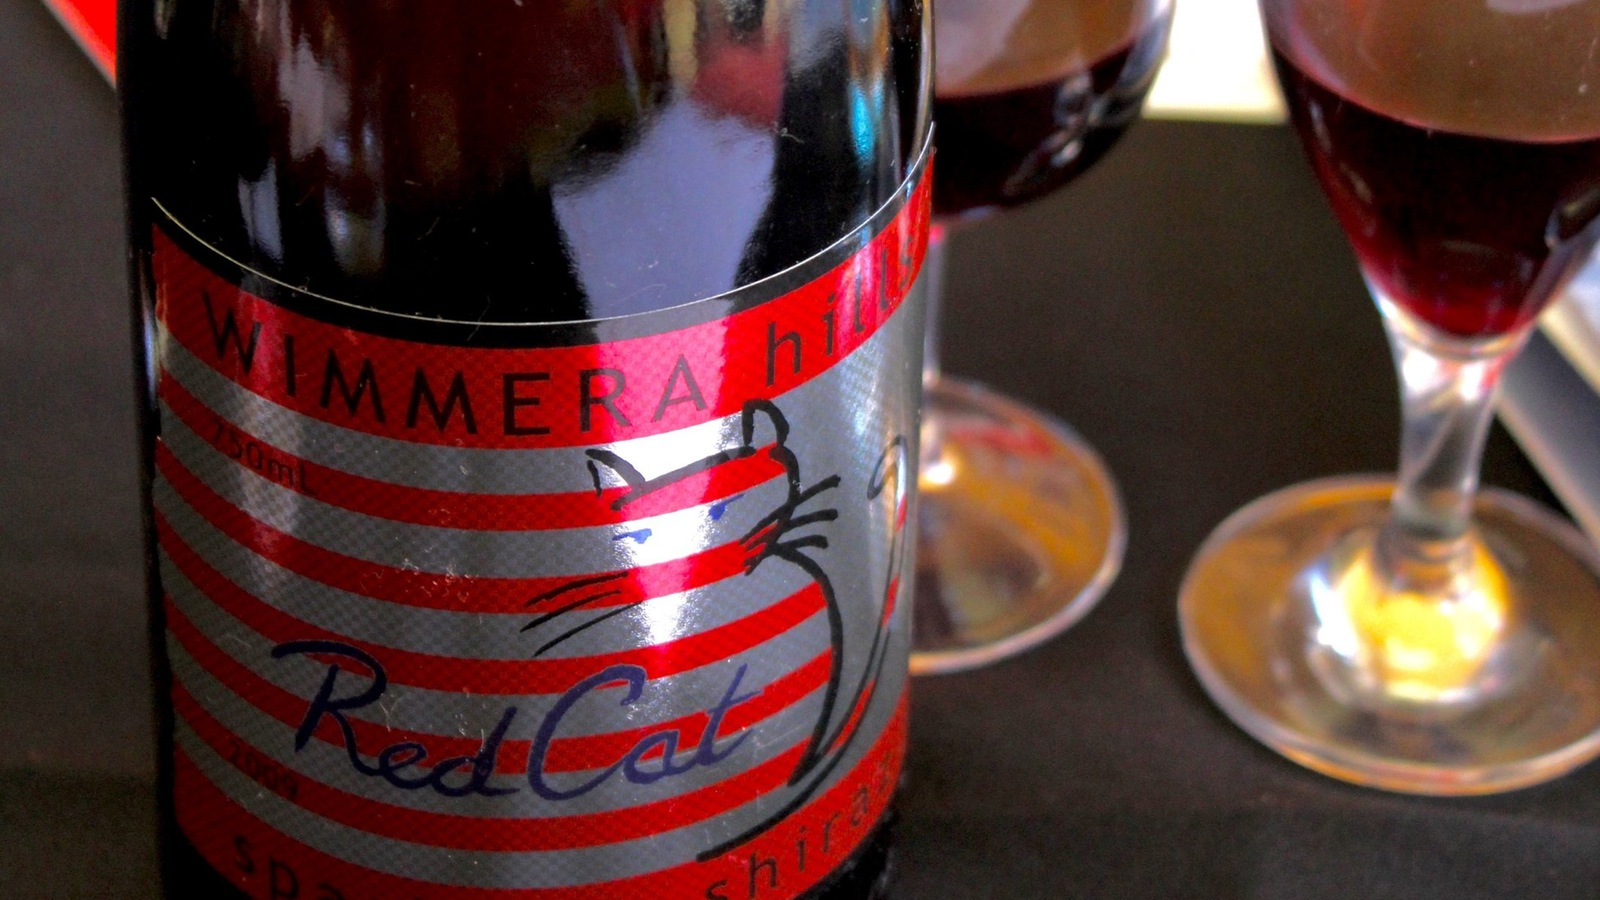 Red Cat sparkling shiraz at Wimmera Hills Winery